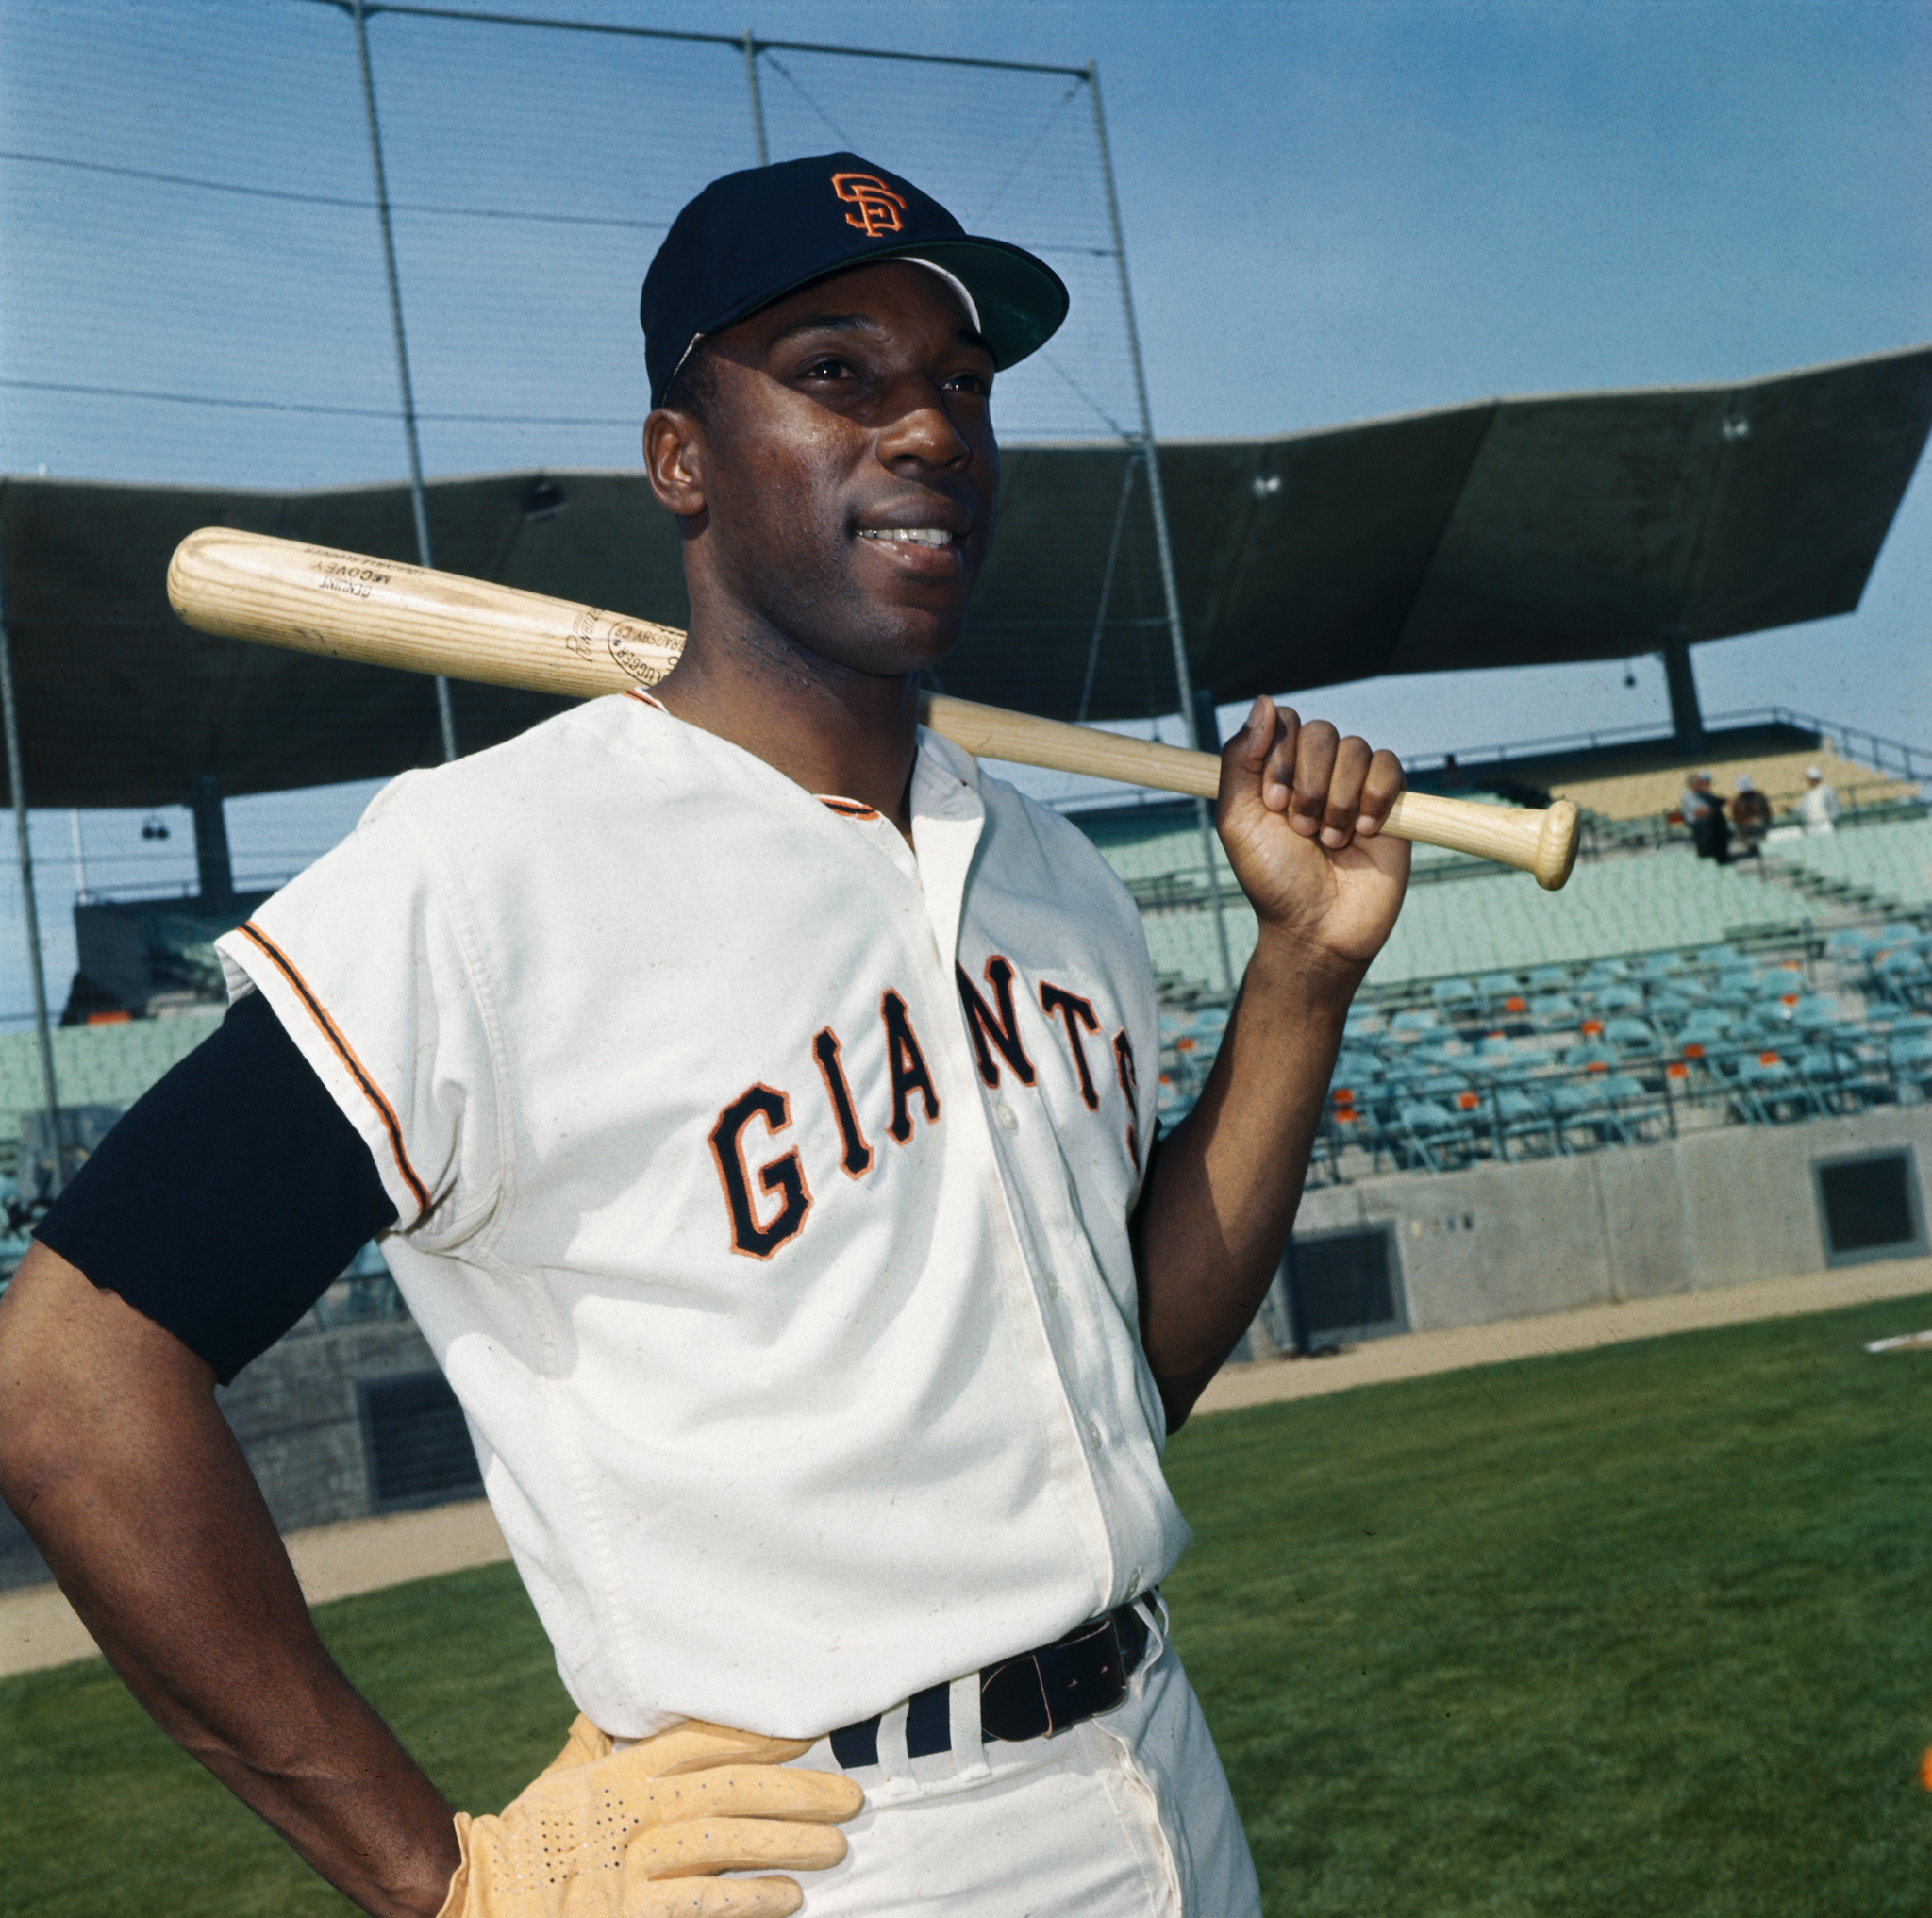 Willie McCovey Holding Baseball Bat